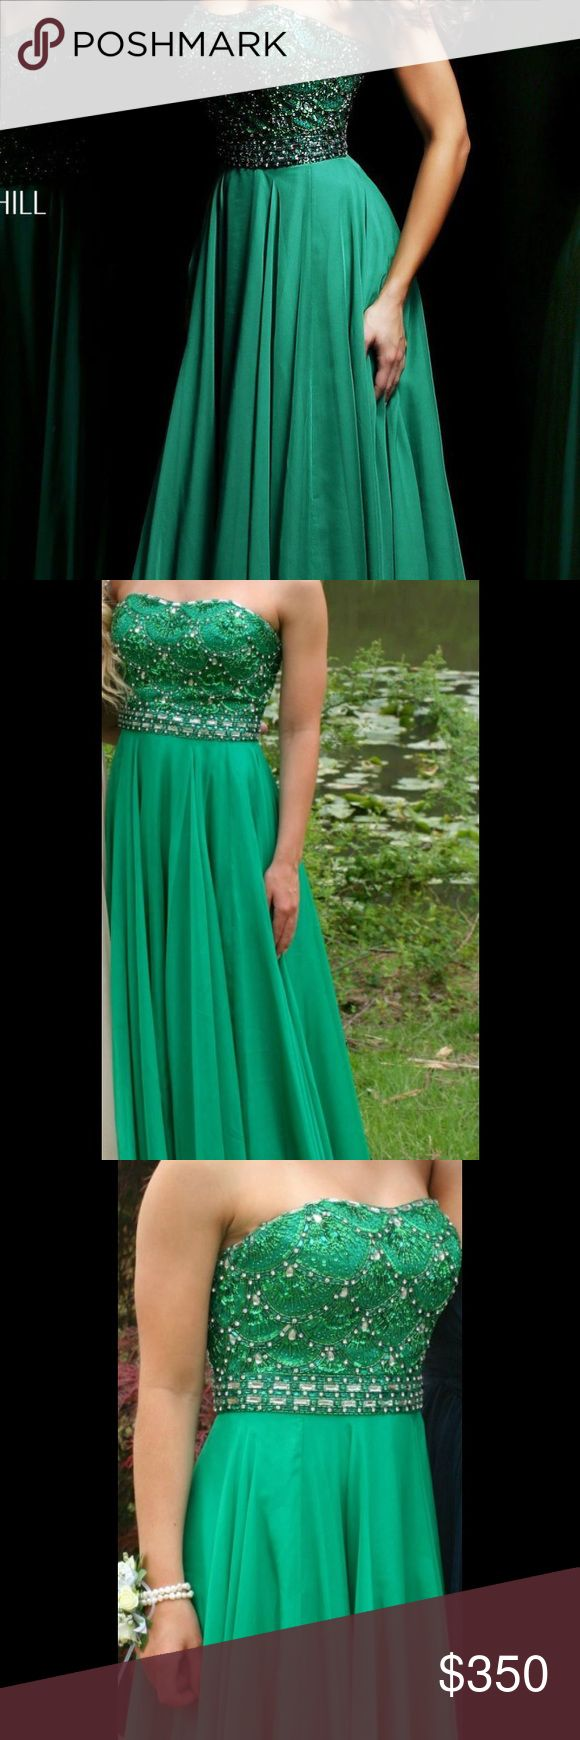 Sherri Hill Prom dress! Sadie Robertson line Size 4, tailored to fit a 5'3 height! Only worn once Sherri Hill Dresses Prom